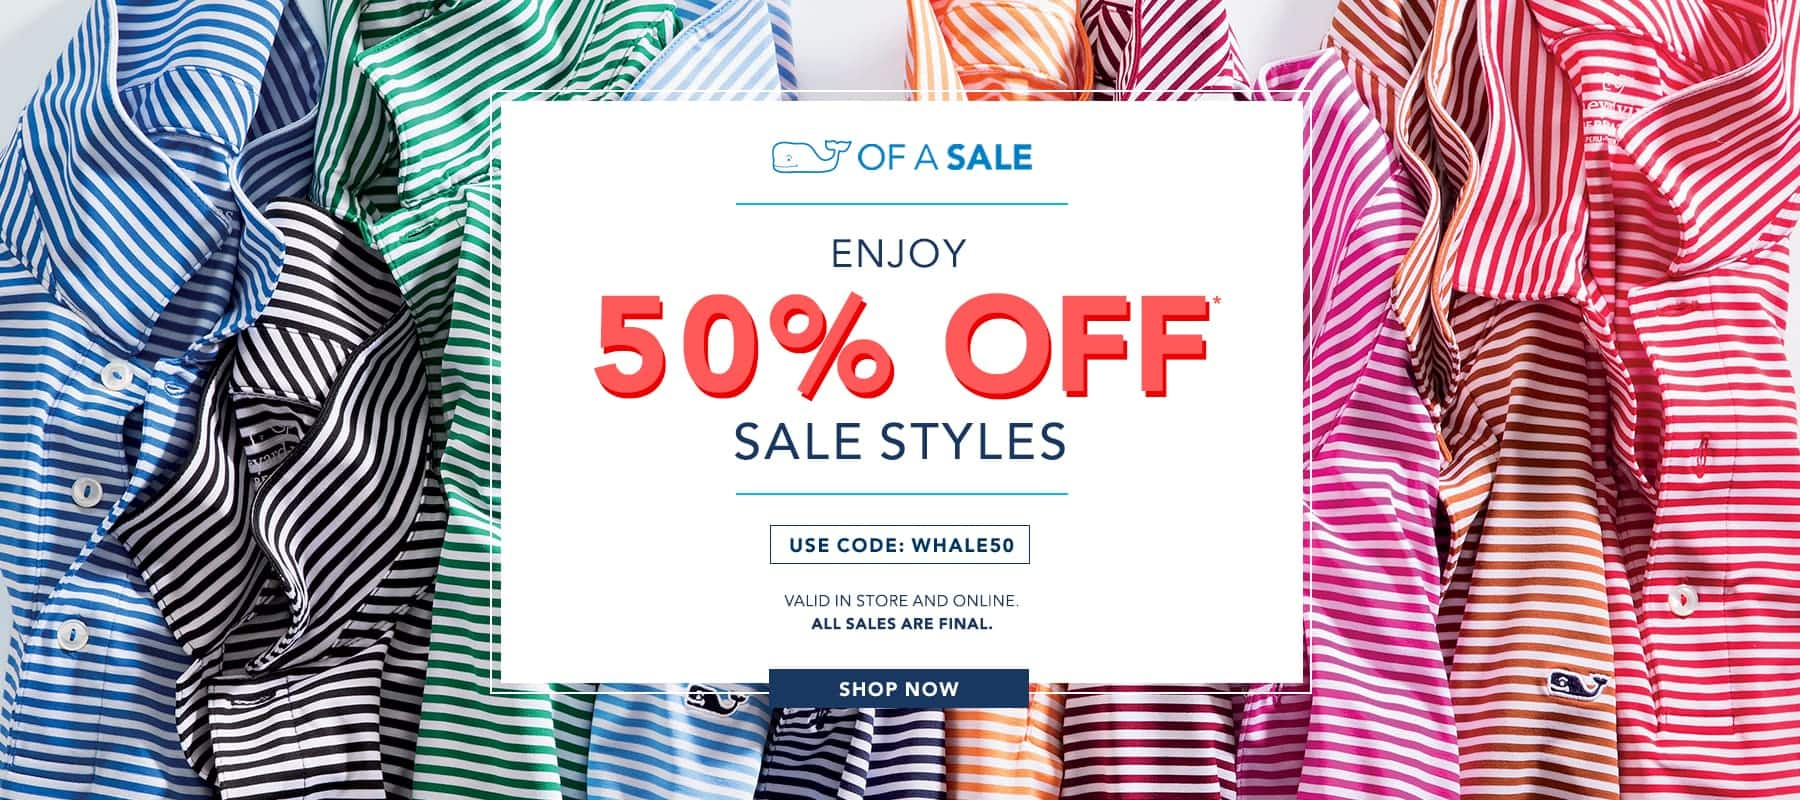 Vineyard Vines 50% Off All Sale Styles Online + Store